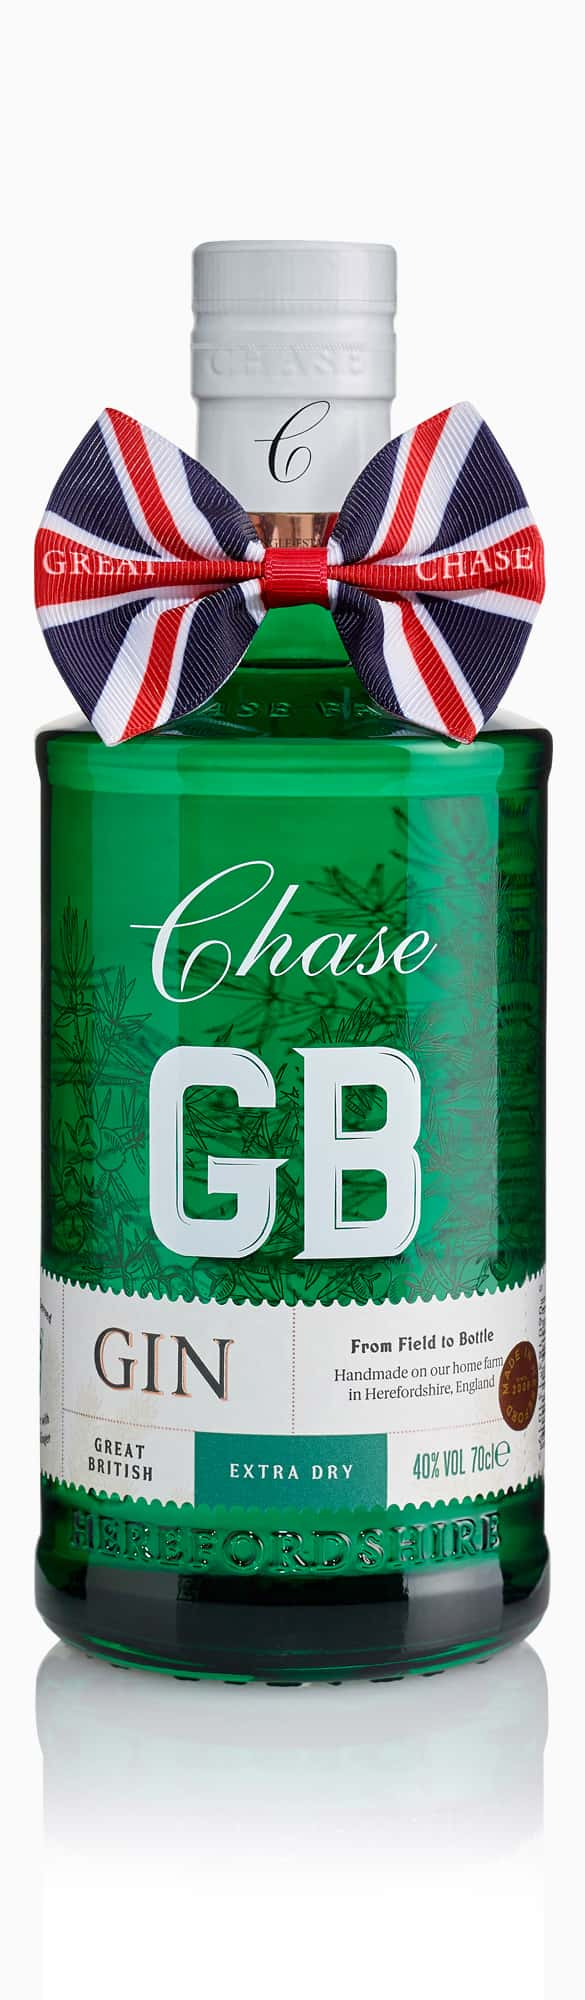 Chase-GB-Gin